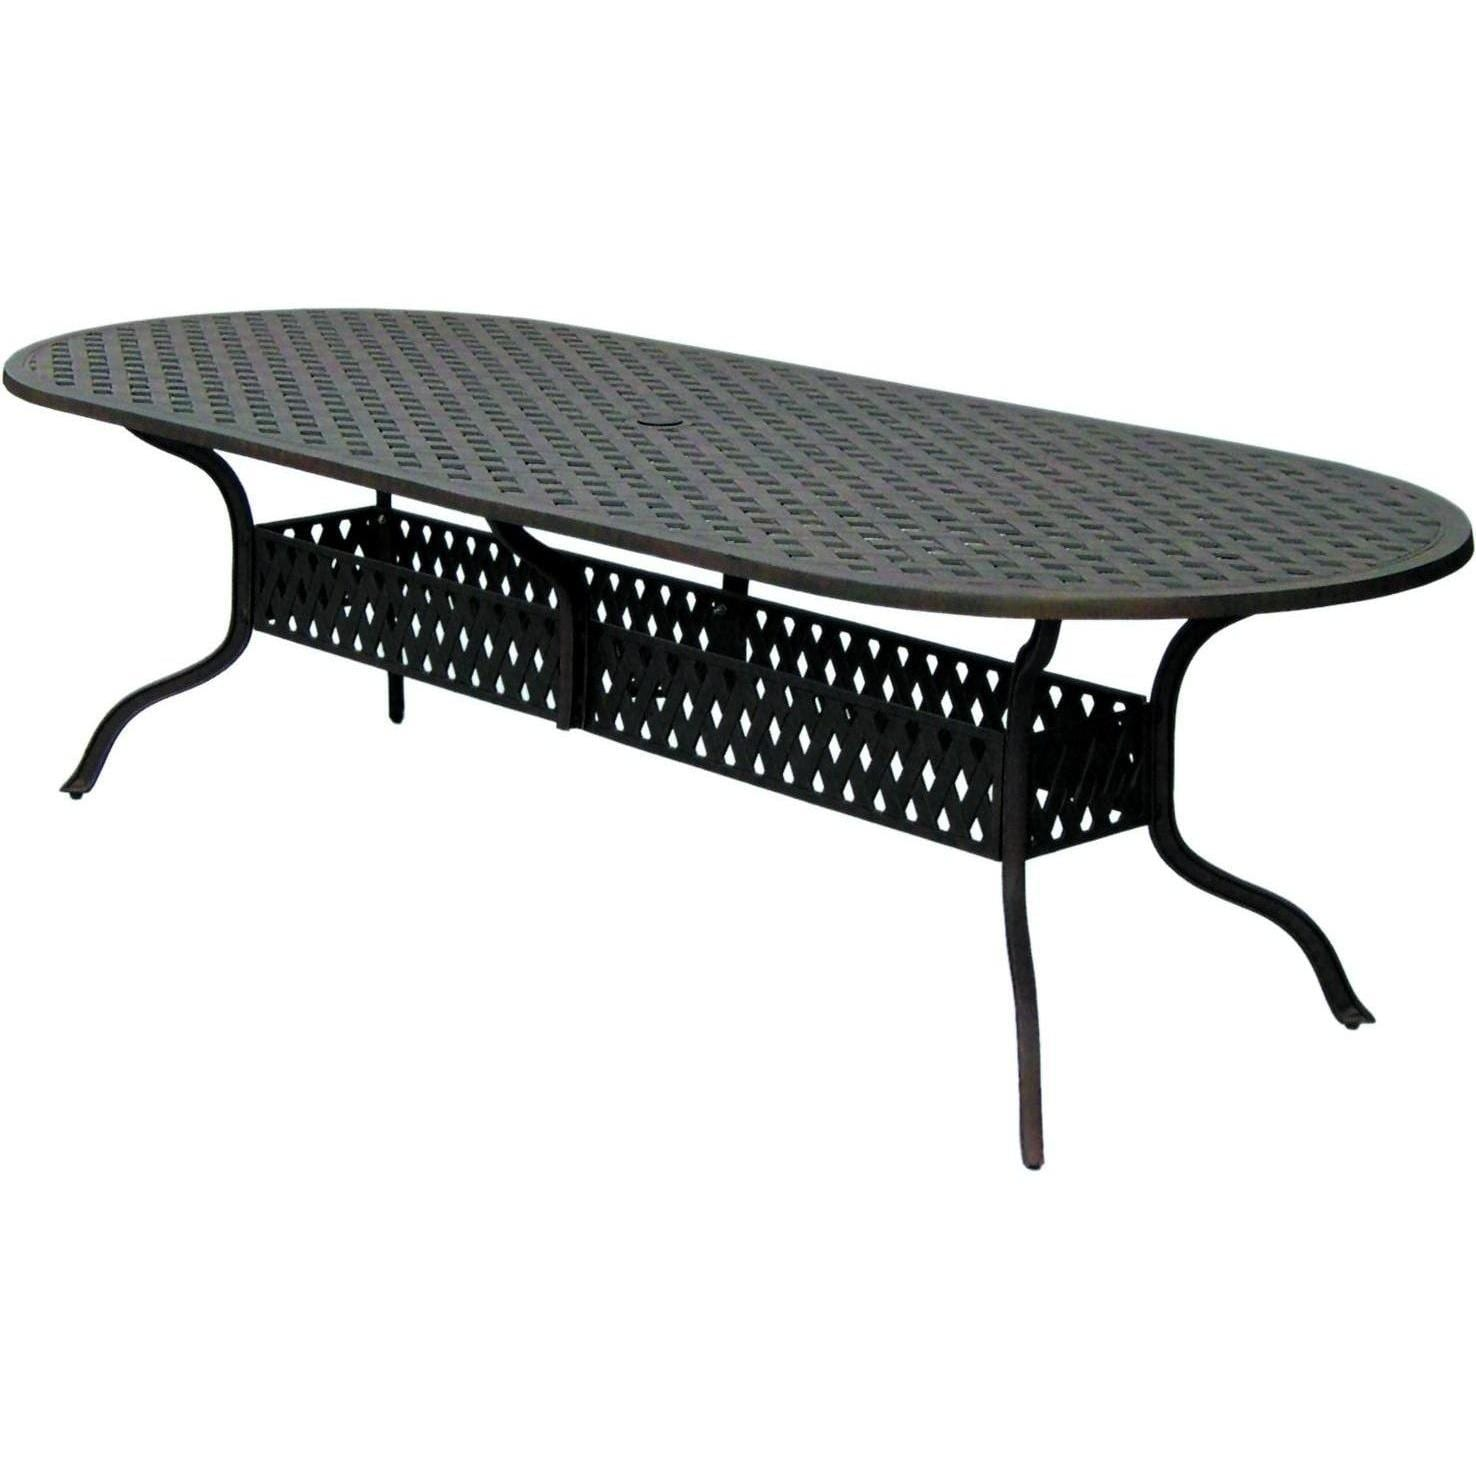 Peachy Darlee Santa Monica 9 Piece Cast Aluminum Patio Dining Set With Oval Table Home Interior And Landscaping Ologienasavecom